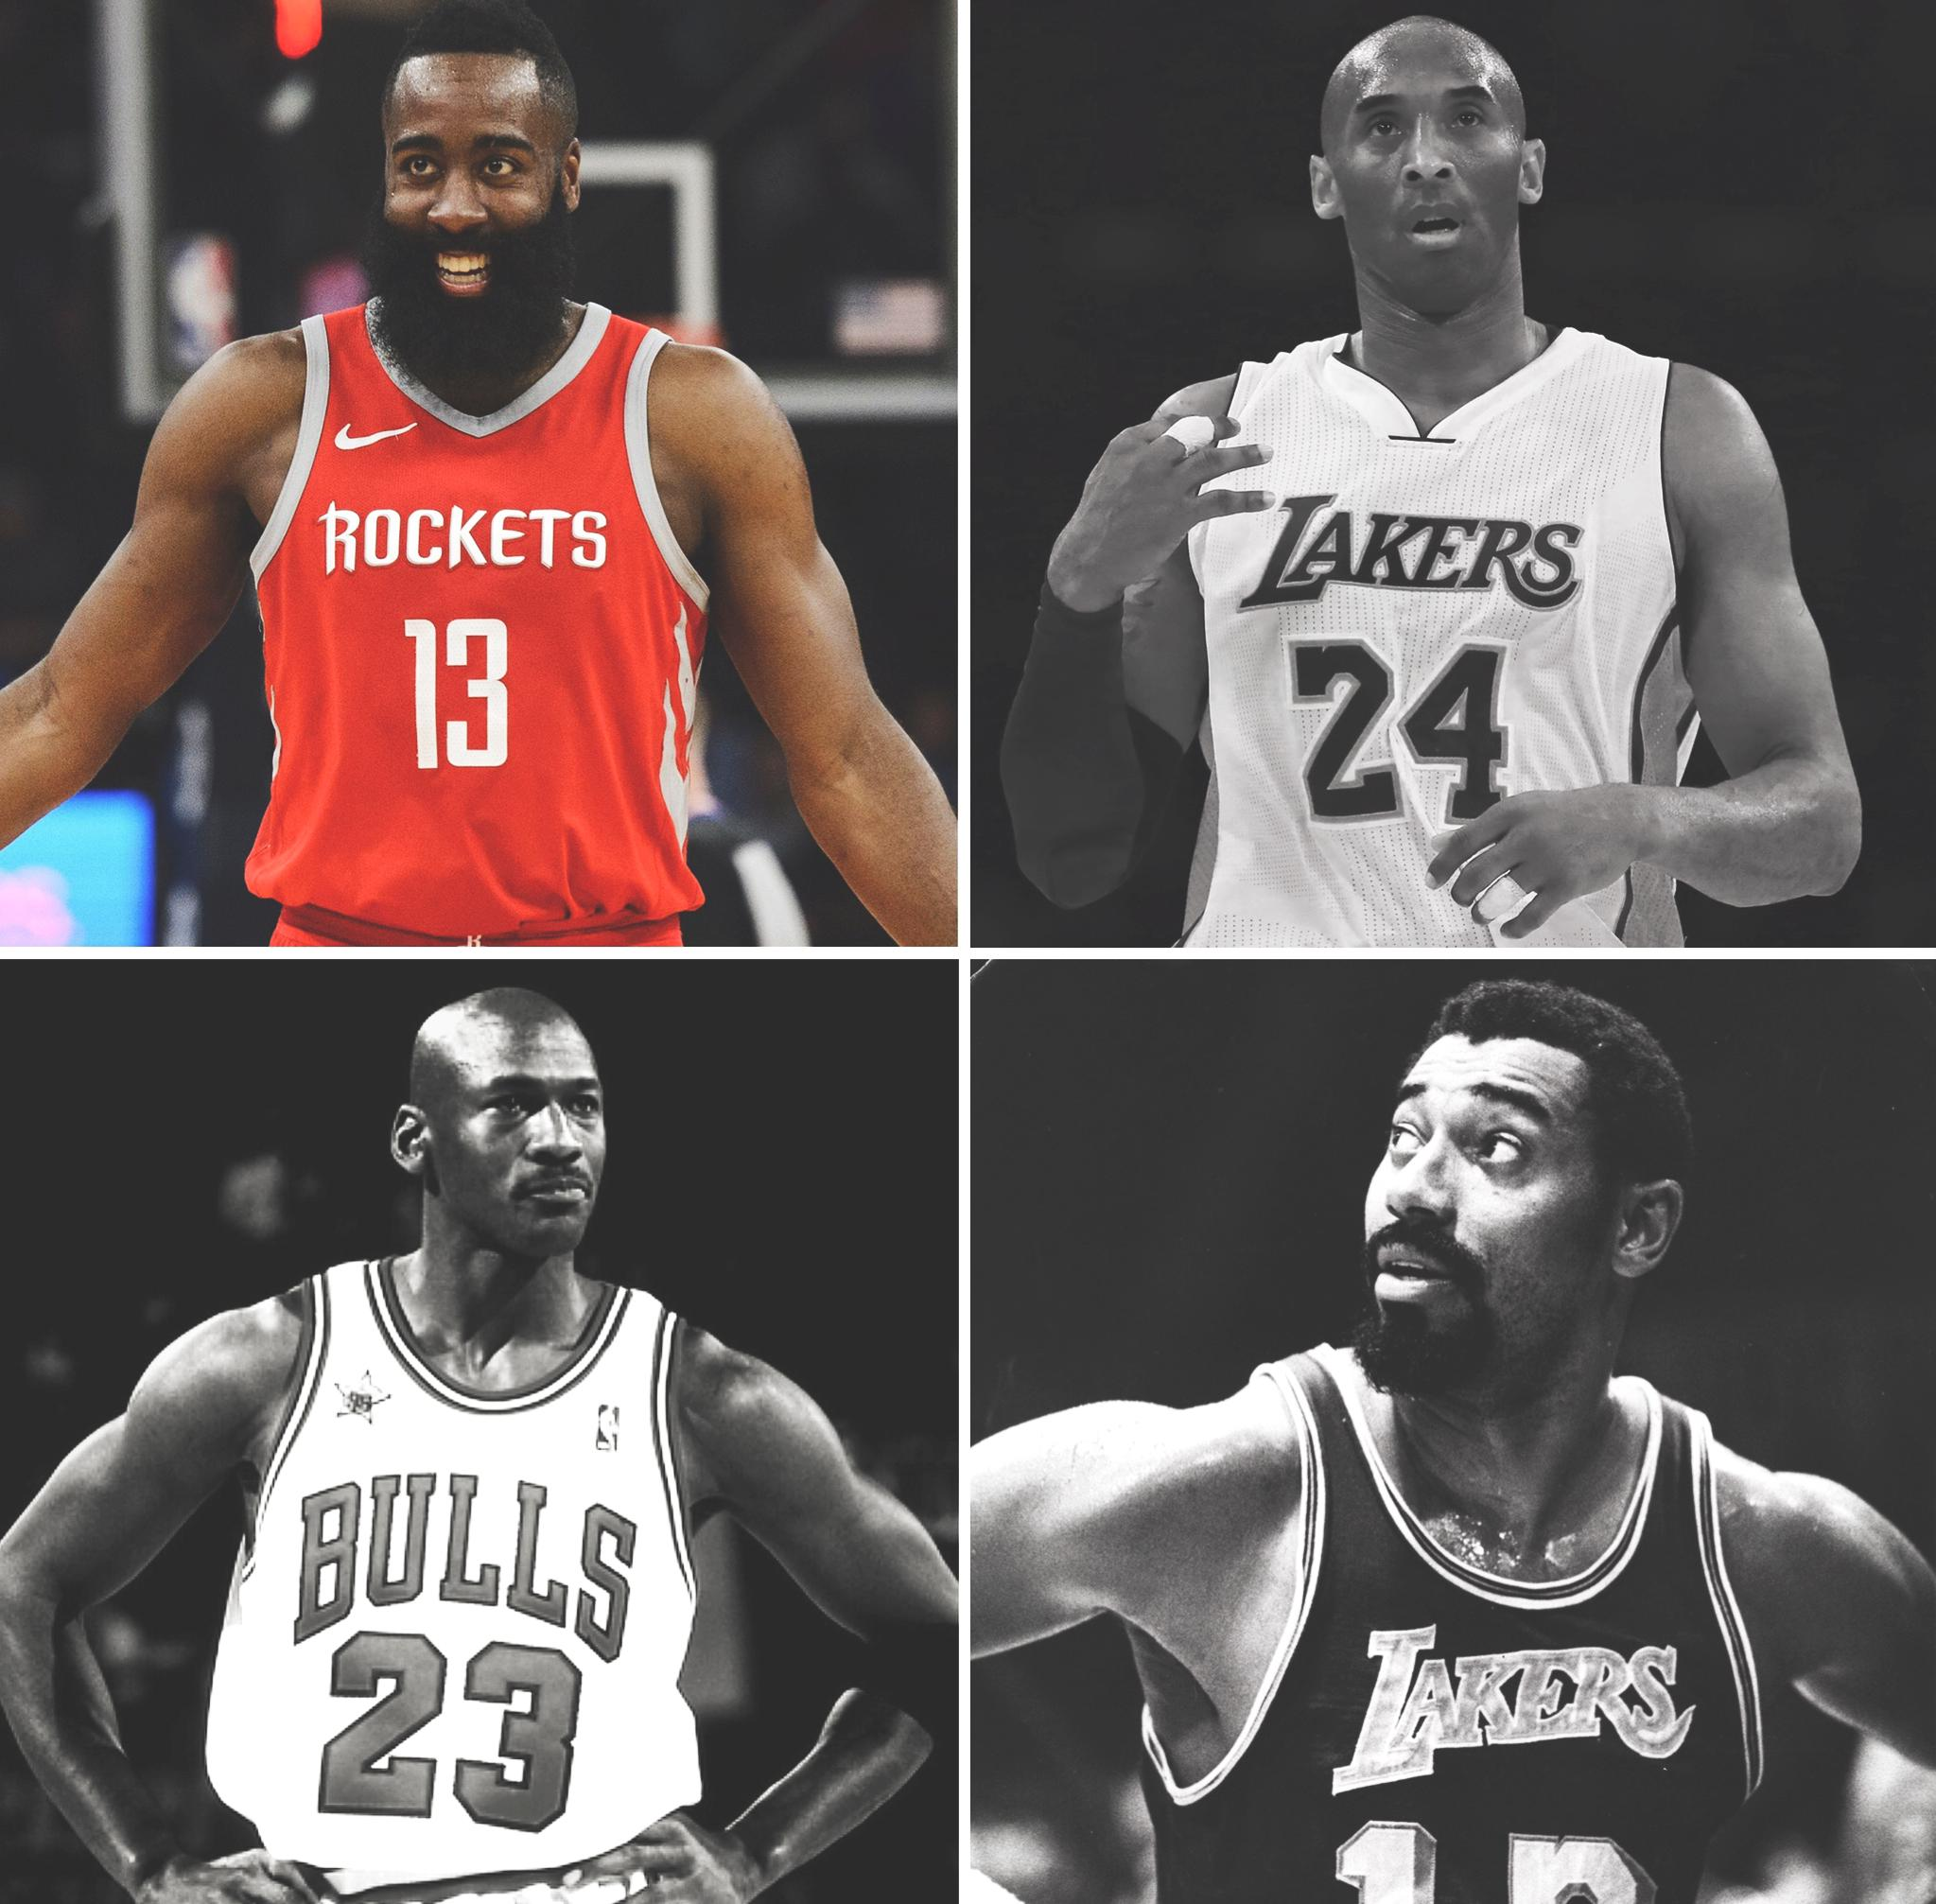 James Harden joins Wilt, Kobe and MJ as the only players with multiple 60-point games in a season in NBA history ���� https://t.co/wAZqAAuzi7